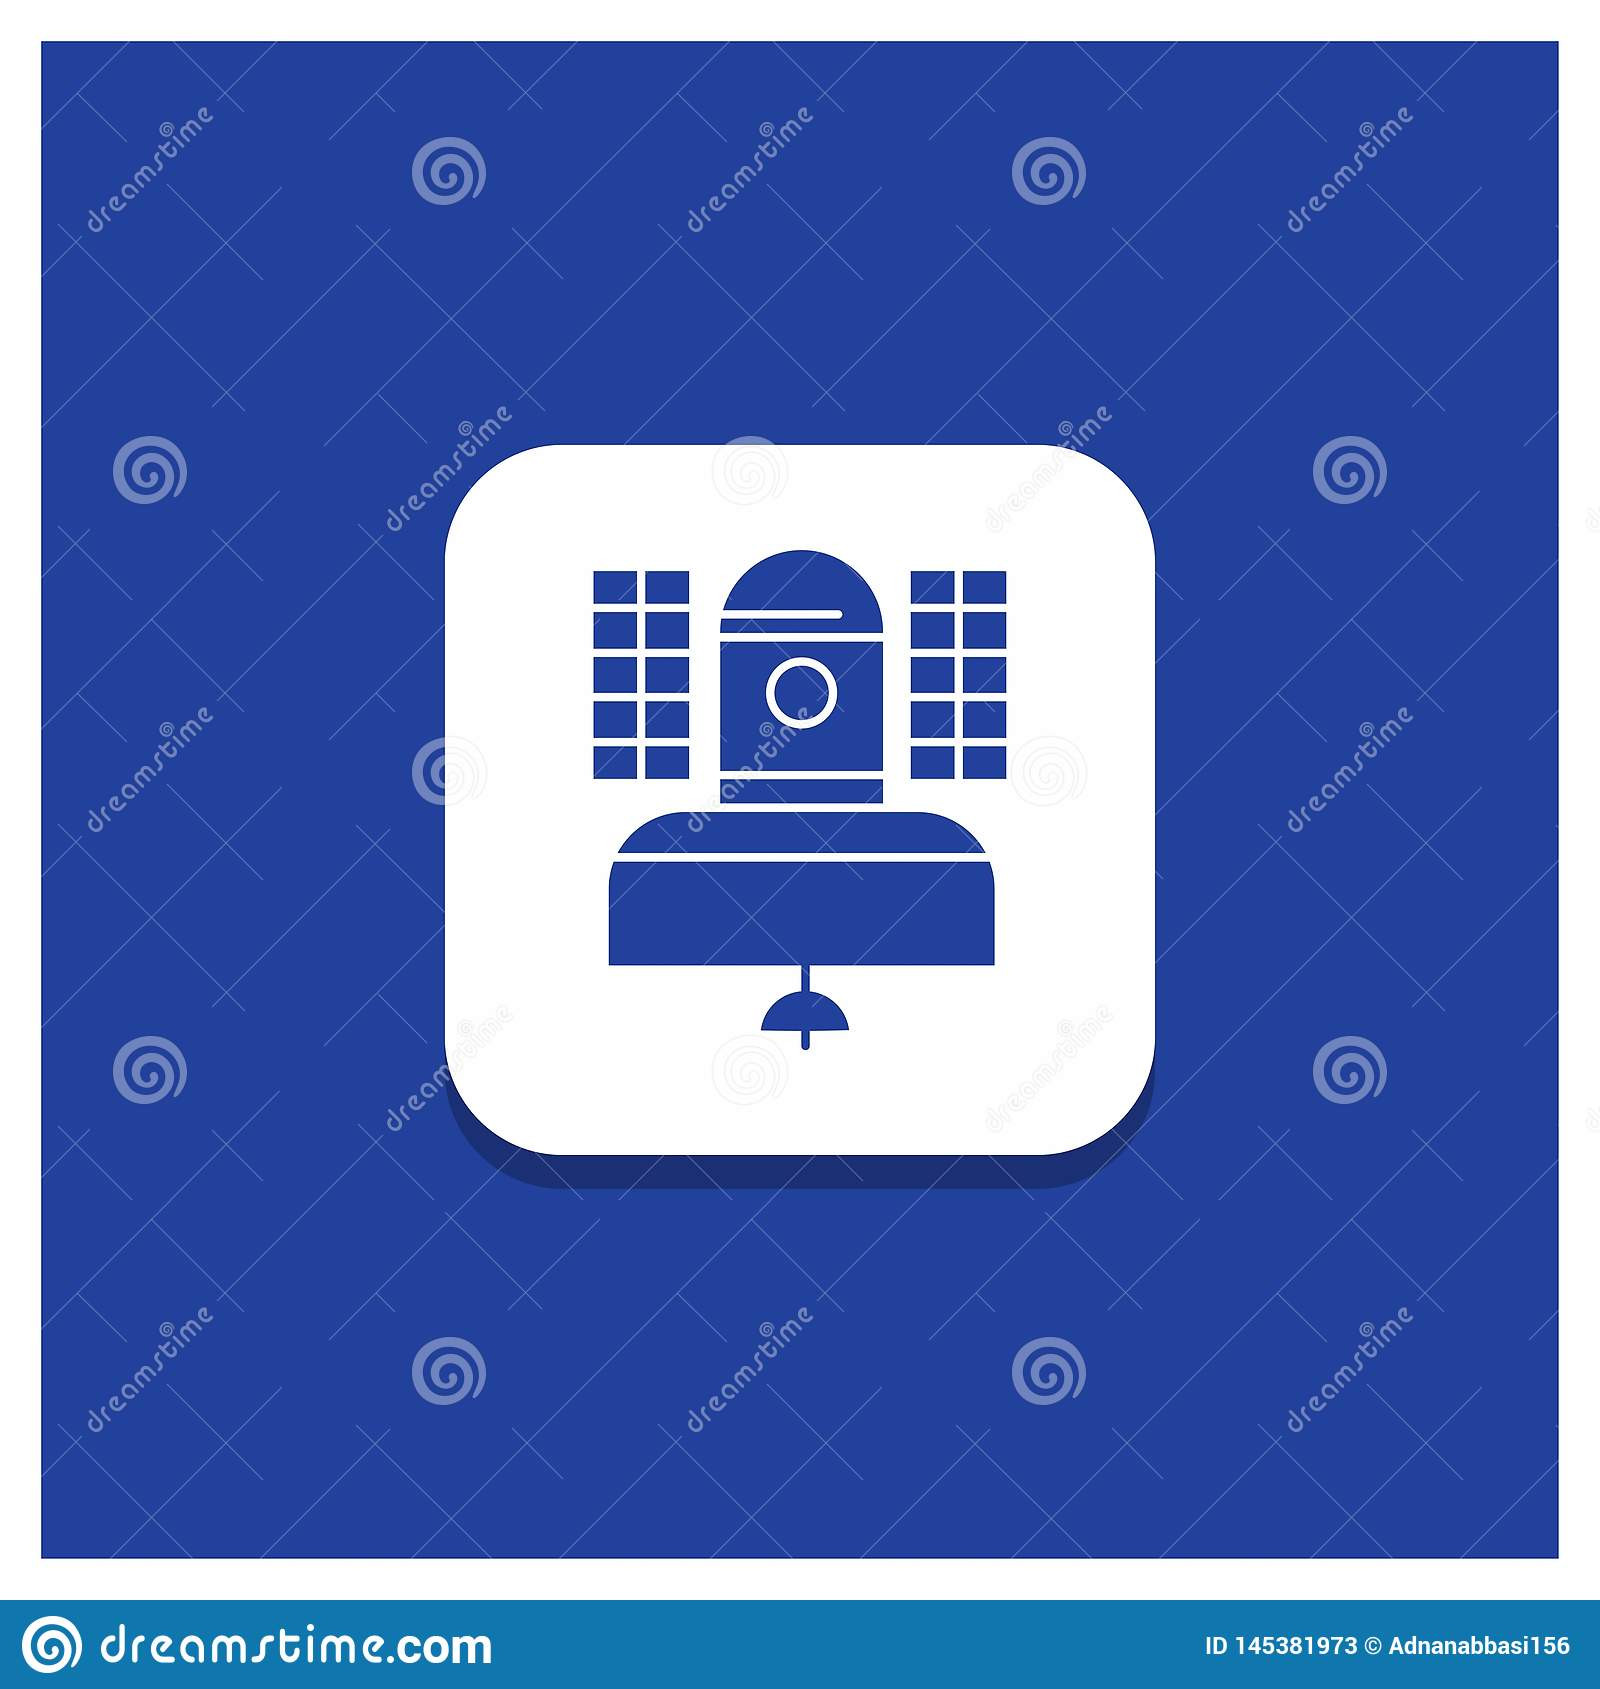 Blue Round Button for Satellite, broadcast, broadcasting, communication, telecommunication Glyph icon